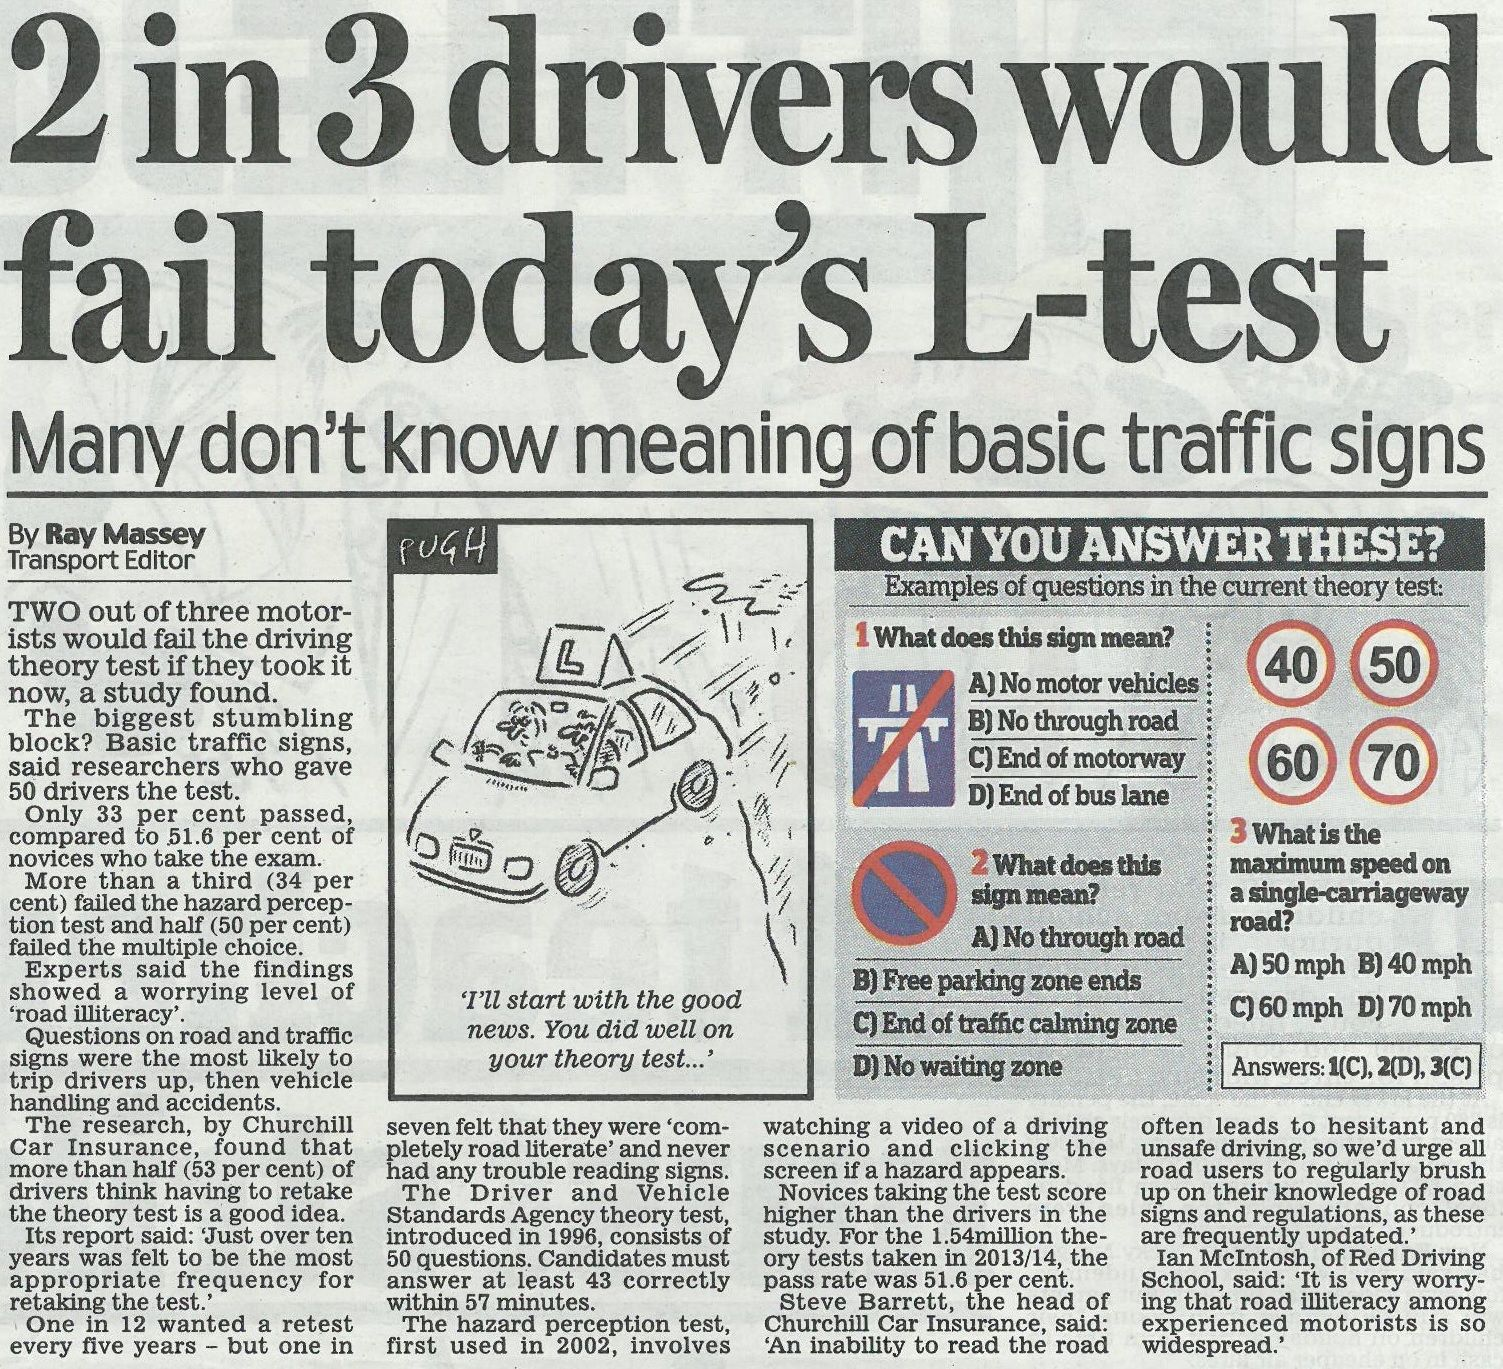 The Daily Mail Features Research By Red And Churchill Car Insurance That Shows 2 In 3 Drivers Would Fail Their Theory Test This Or That Questions Sign Meaning